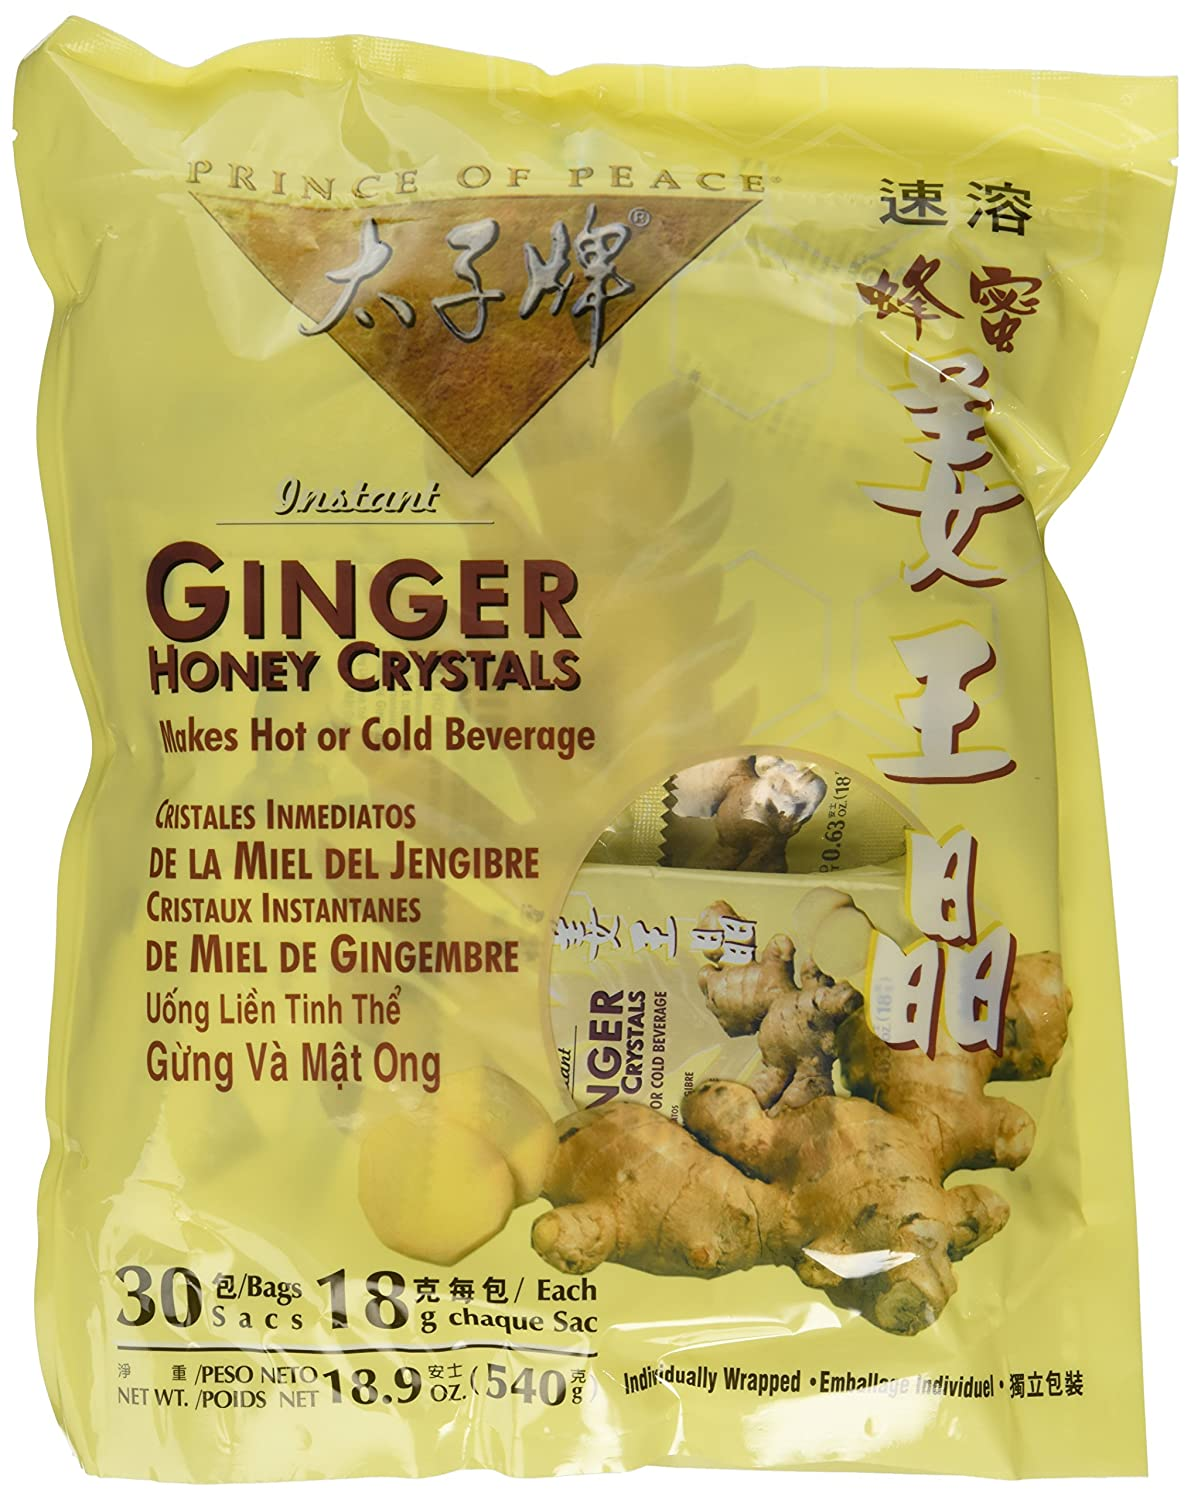 Prince of Peace Instant Ginger Honey Crystals (Pack of 3 x 30ct)